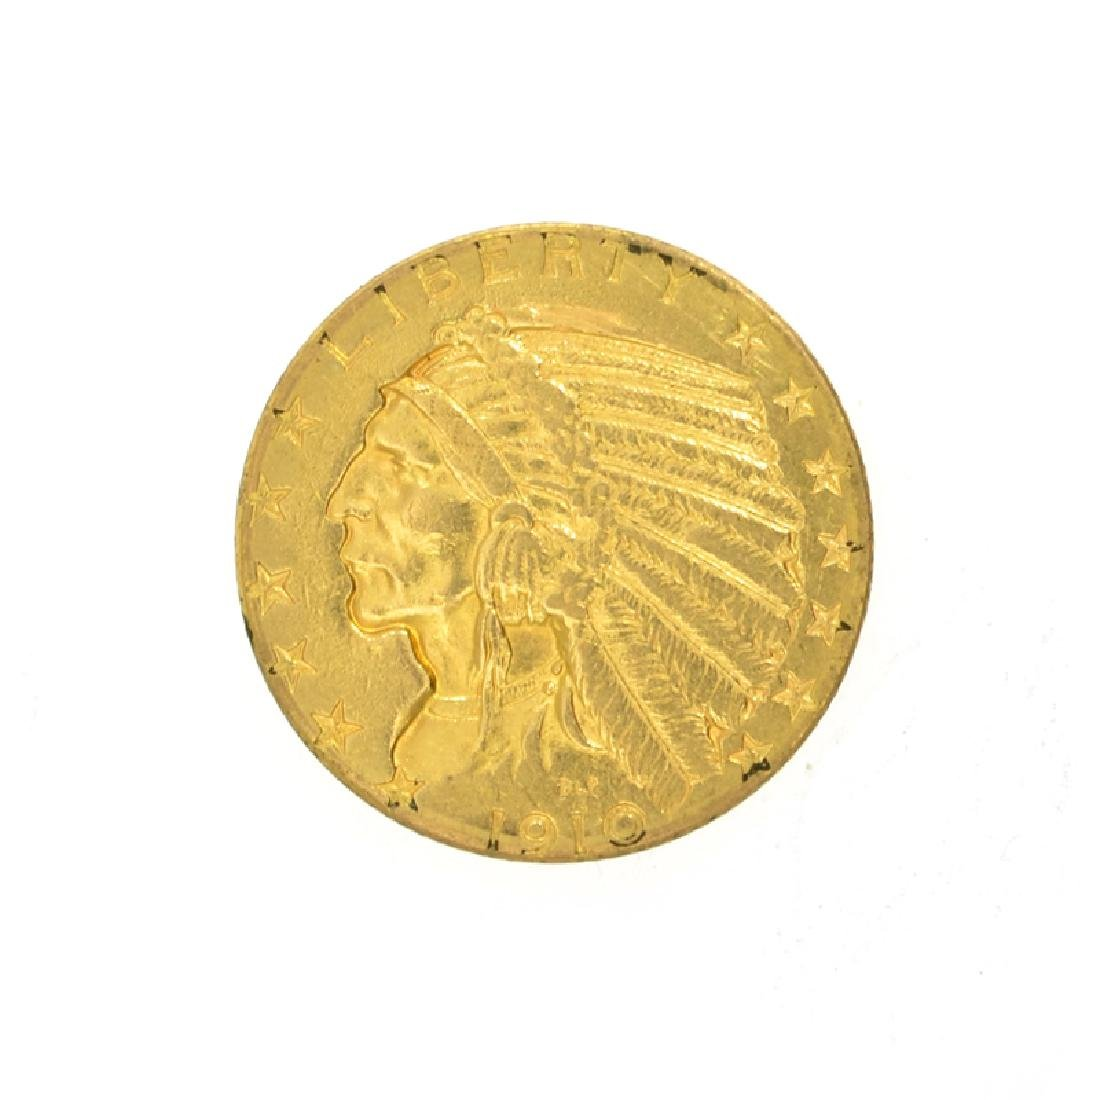 *1910-D $5 U.S. Indian Head Gold Coin (DF)